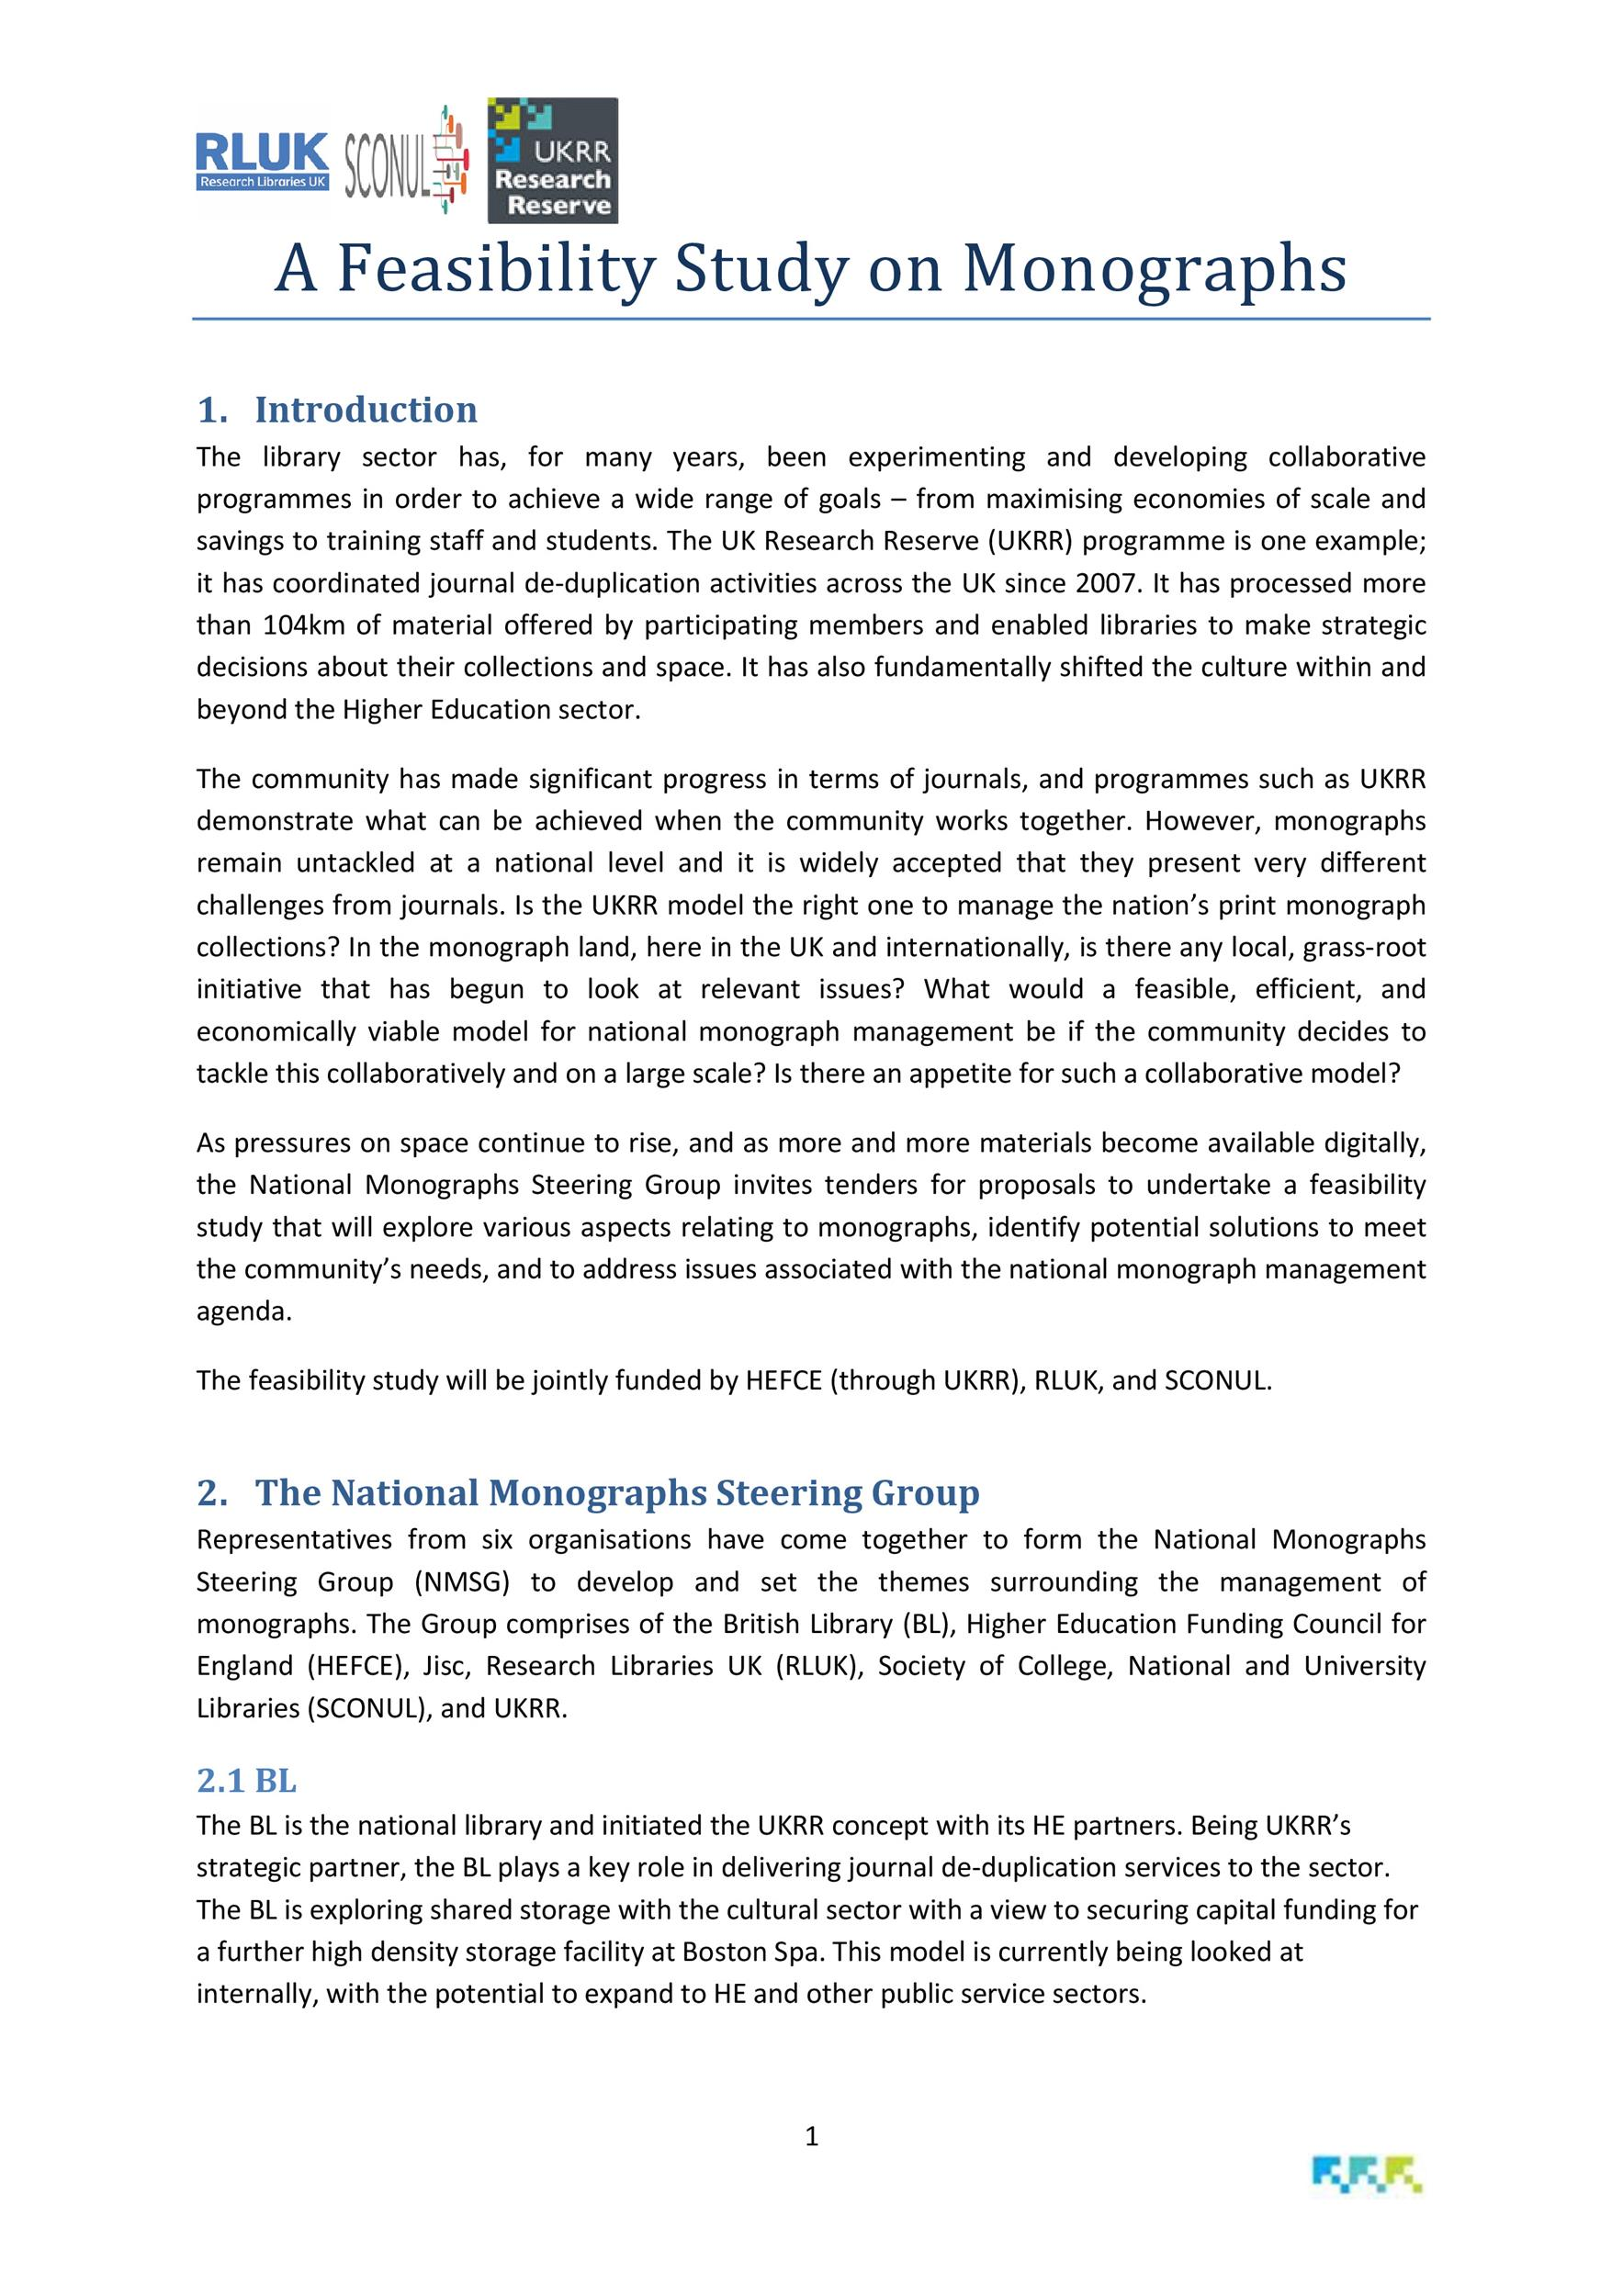 Free feasibility study example 05